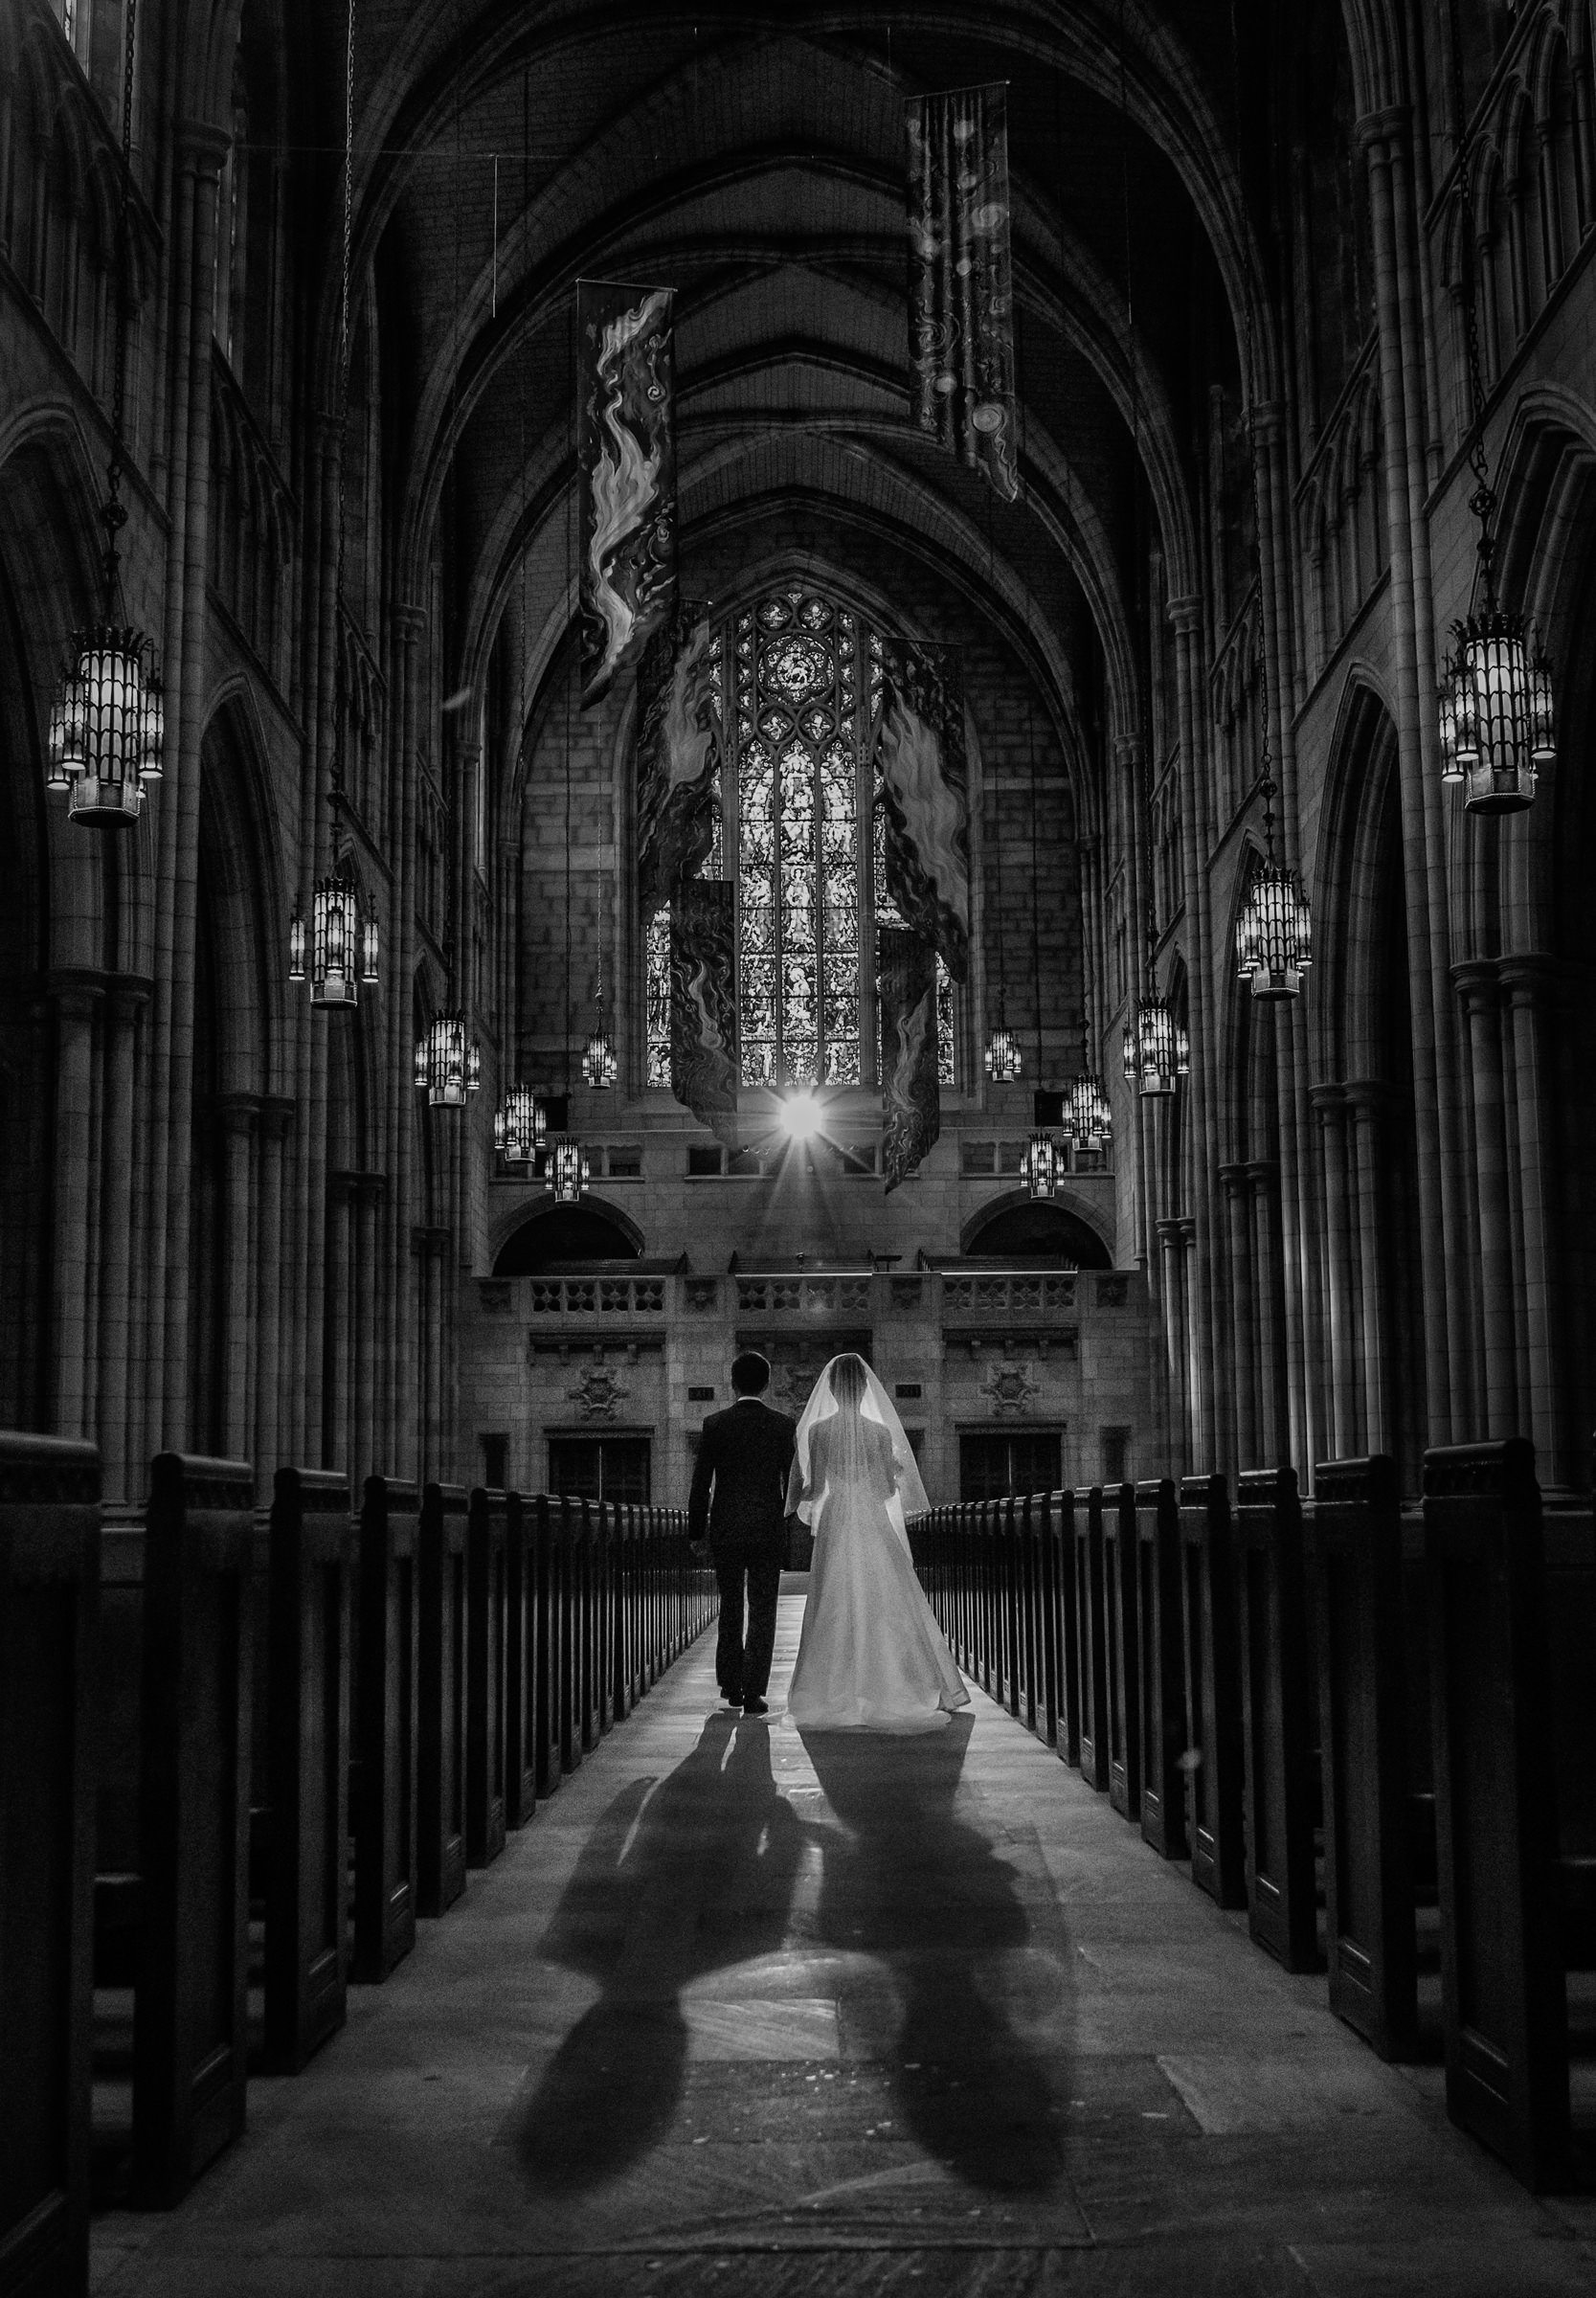 Bride and groom walk down aisle of cathedral - Photo by Susan Stripling Photography